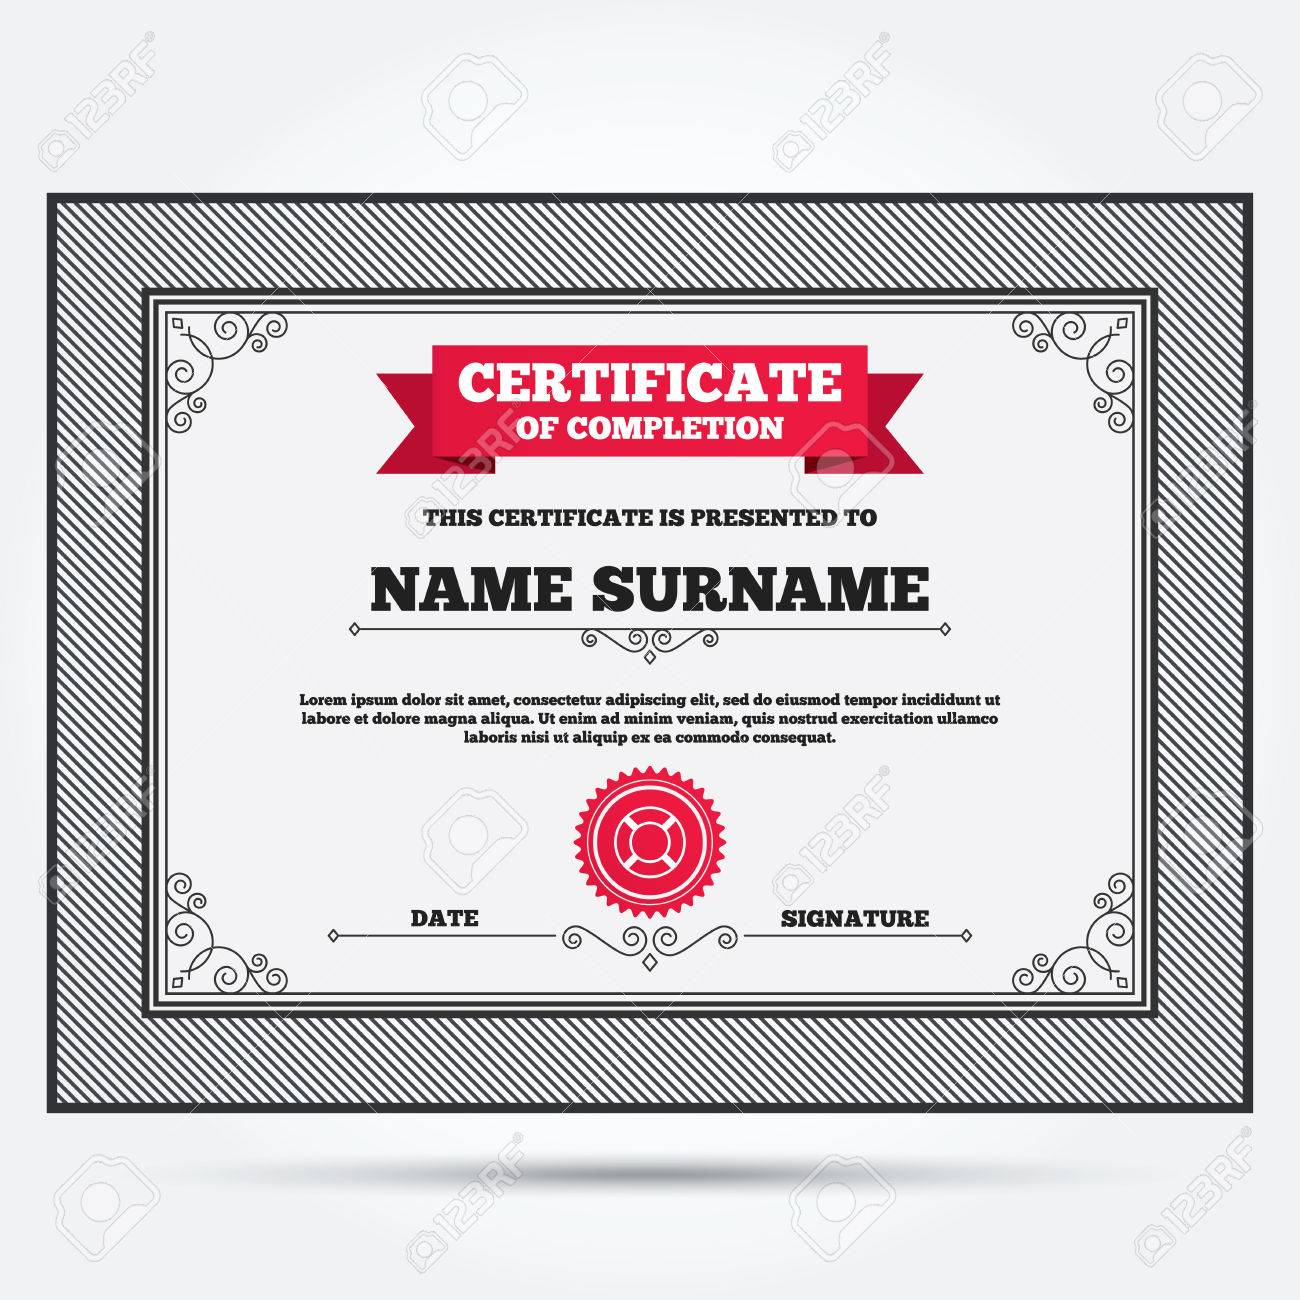 certificate of completion lifebuoy sign icon life salvation symbol template with vintage patterns